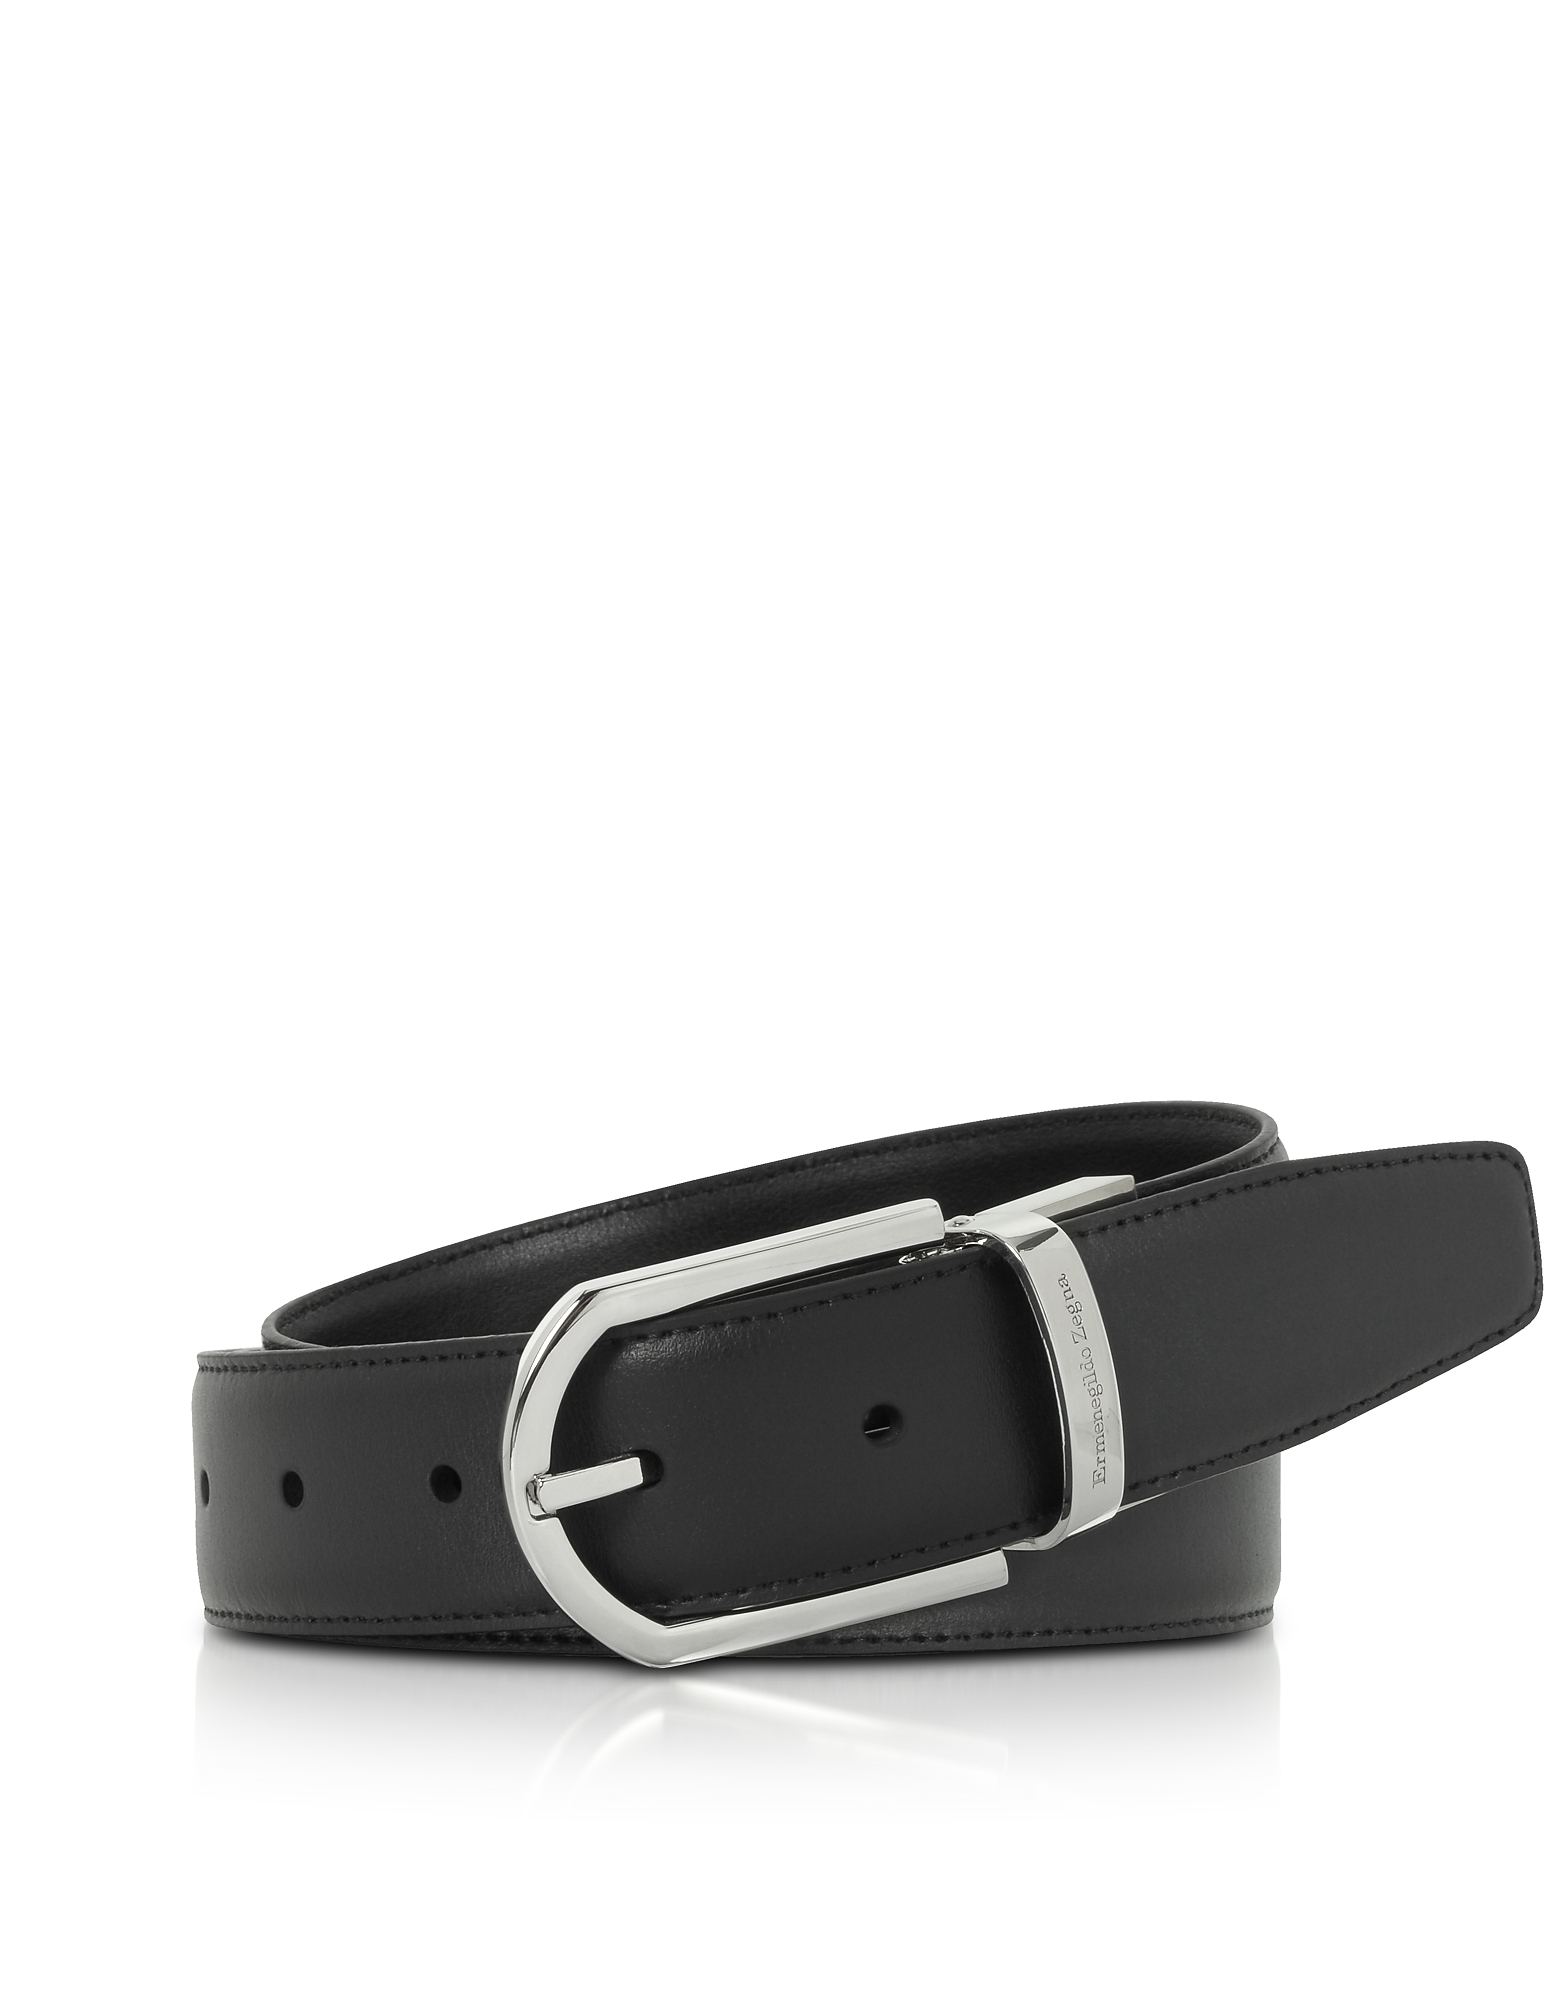 BLACK SMOOTH LEATHER ADJUSTABLE BELT W/SIGNTURE BUCKLE from FORZIERI